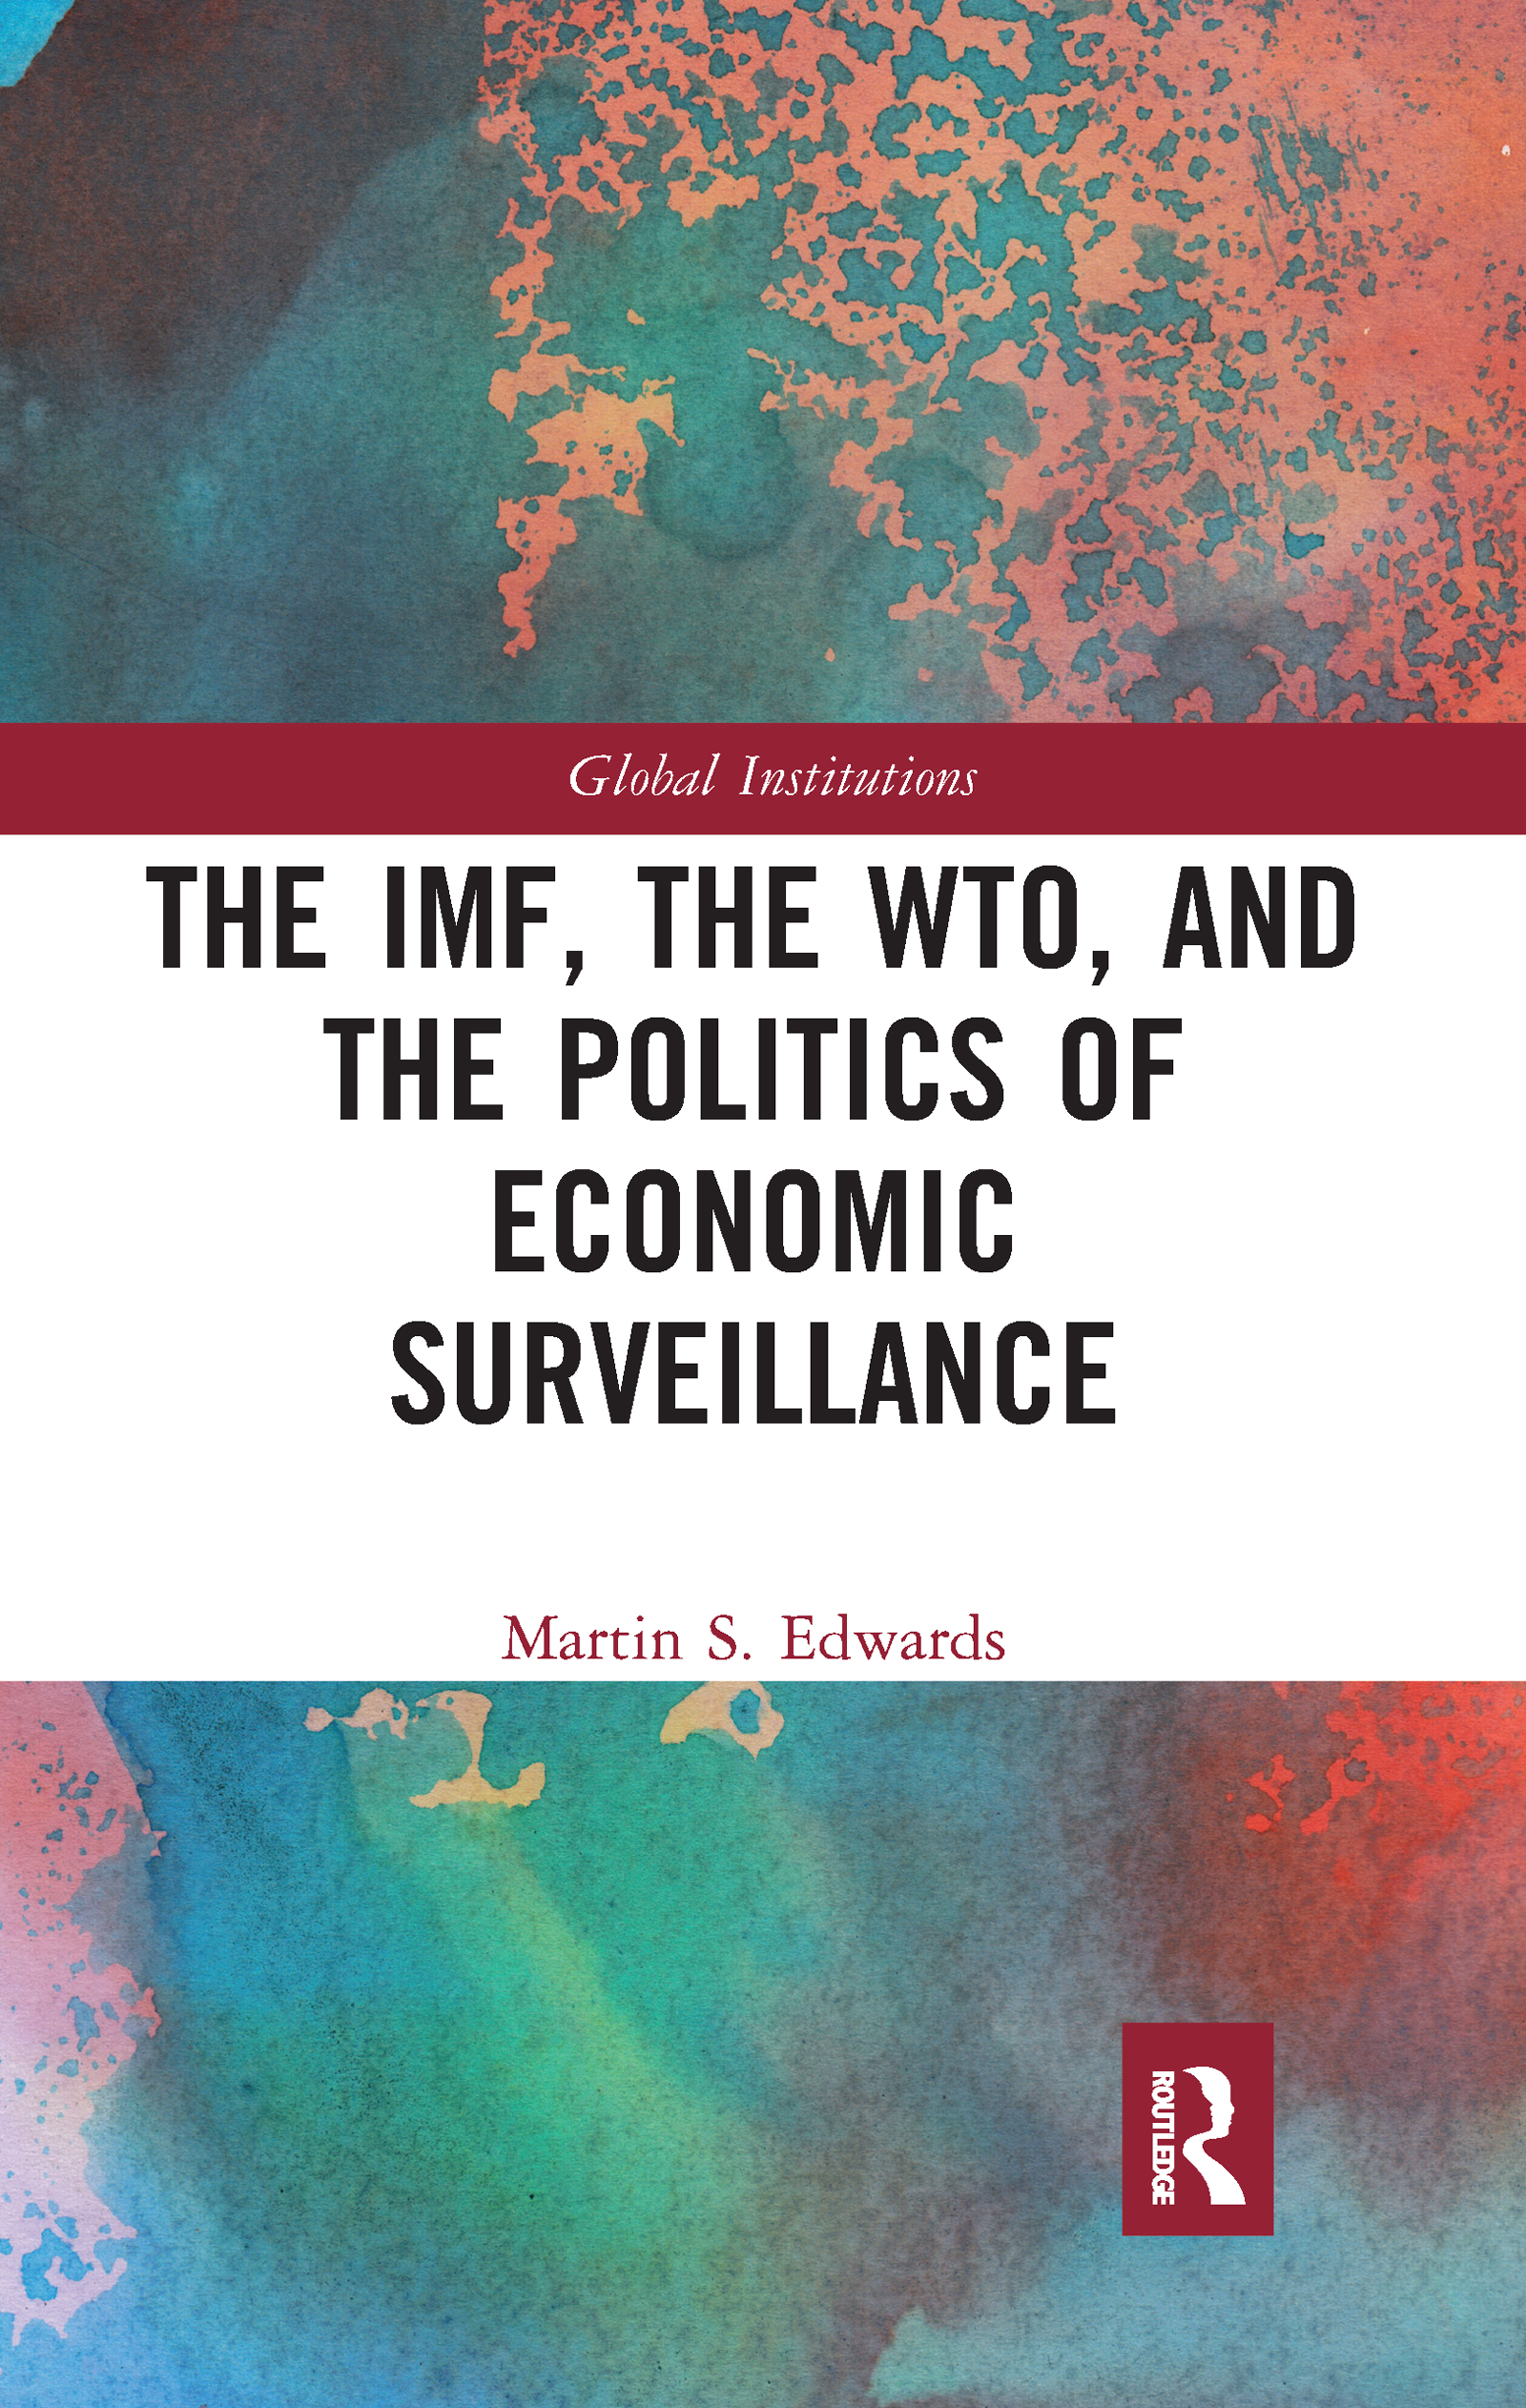 The IMF, the WTO & the Politics of Economic Surveillance